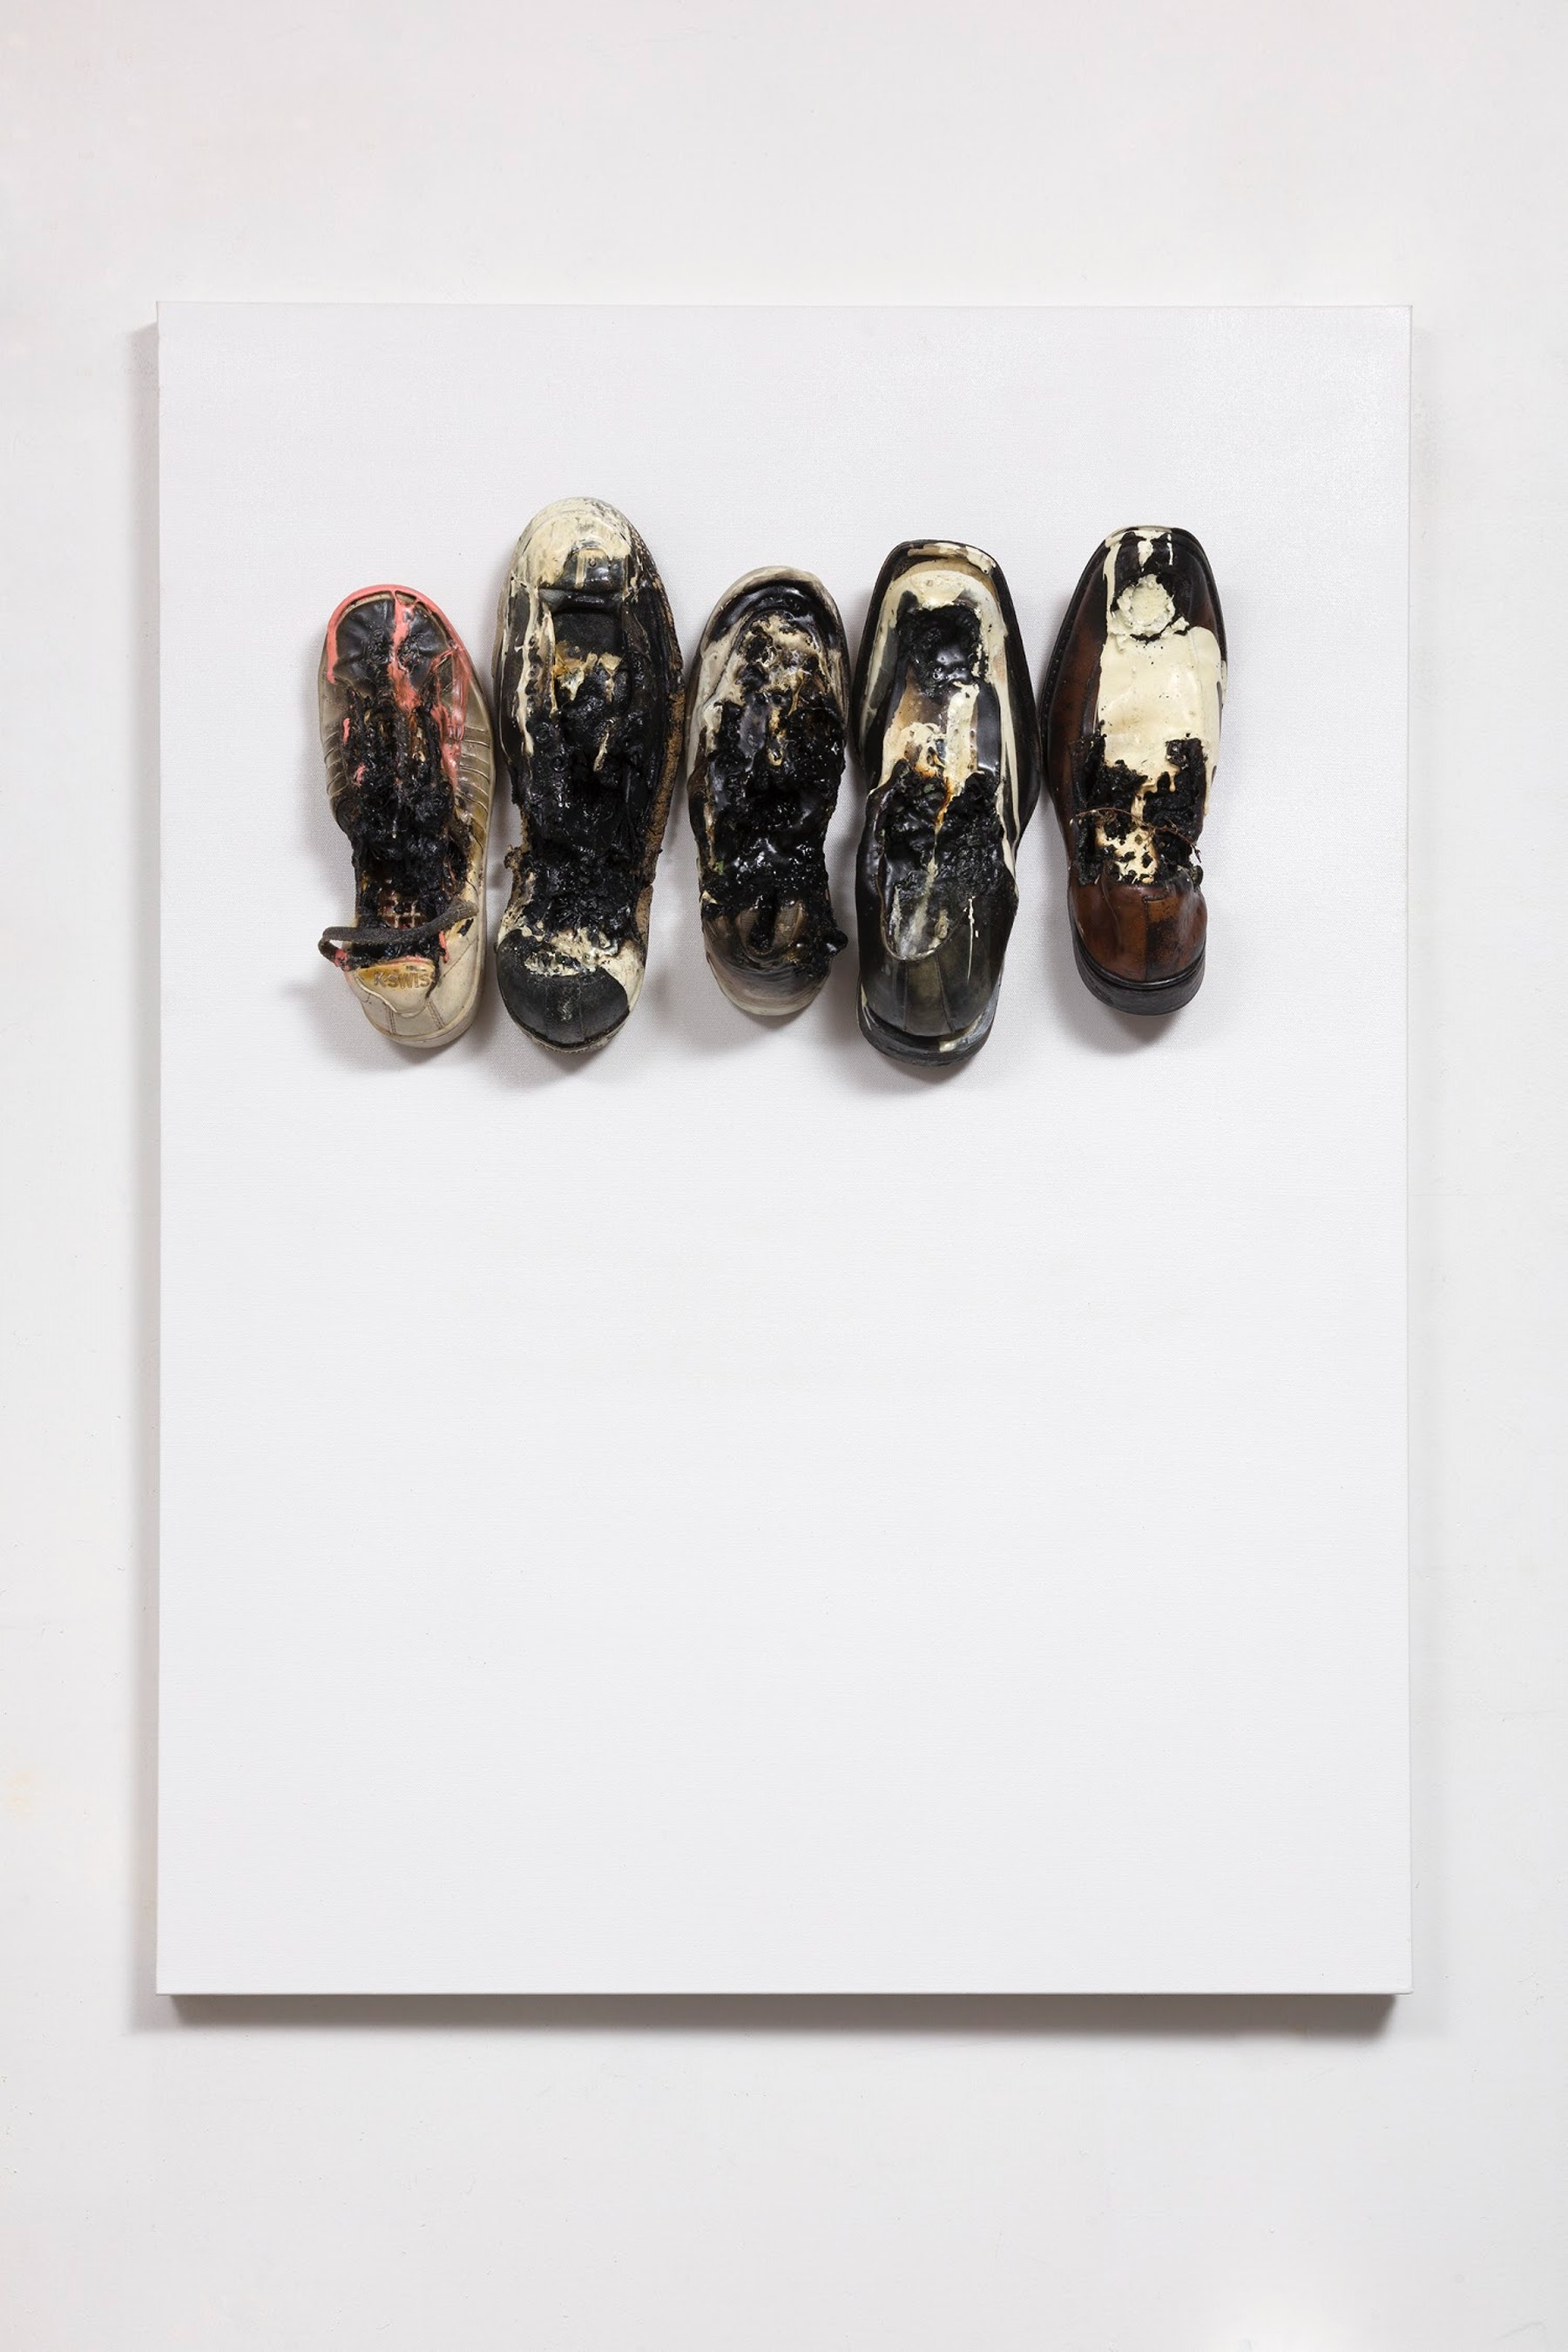 """Edgar Arceneaux """"In Between The Steps, #1,"""" 2020 Shoes, grass, weeds, sticks, acrylic paint, oil paint and resin on canvas 40 x 30 x 7"""" [HxWxD] (101.6 x 76.2 x 17.78 cm) Inventory #ARC620 Courtesy of the artist and Vielmetter Los Angeles"""